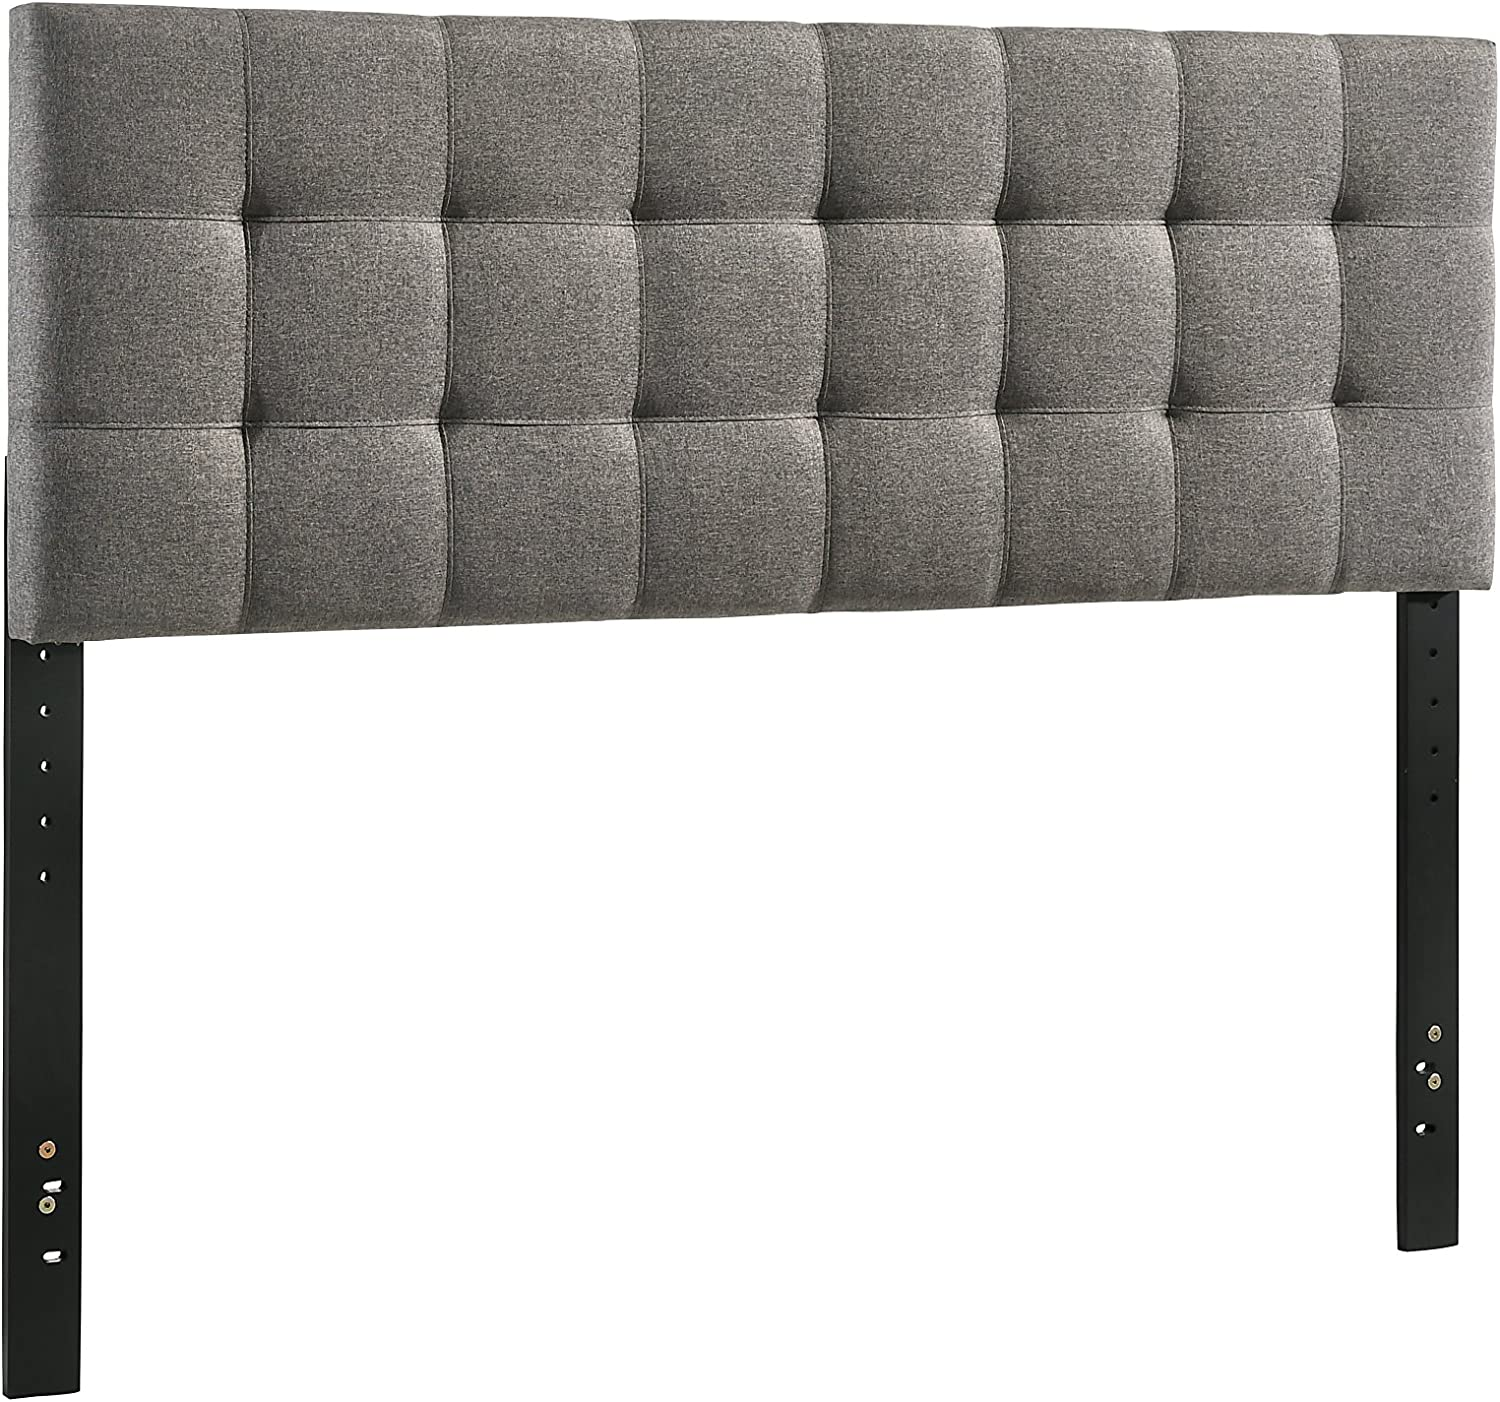 Furniture World Henri Classic Tufted Upholstered Headboard, Twin, Charcoal (Footboard and Side Rails Sold Separately)